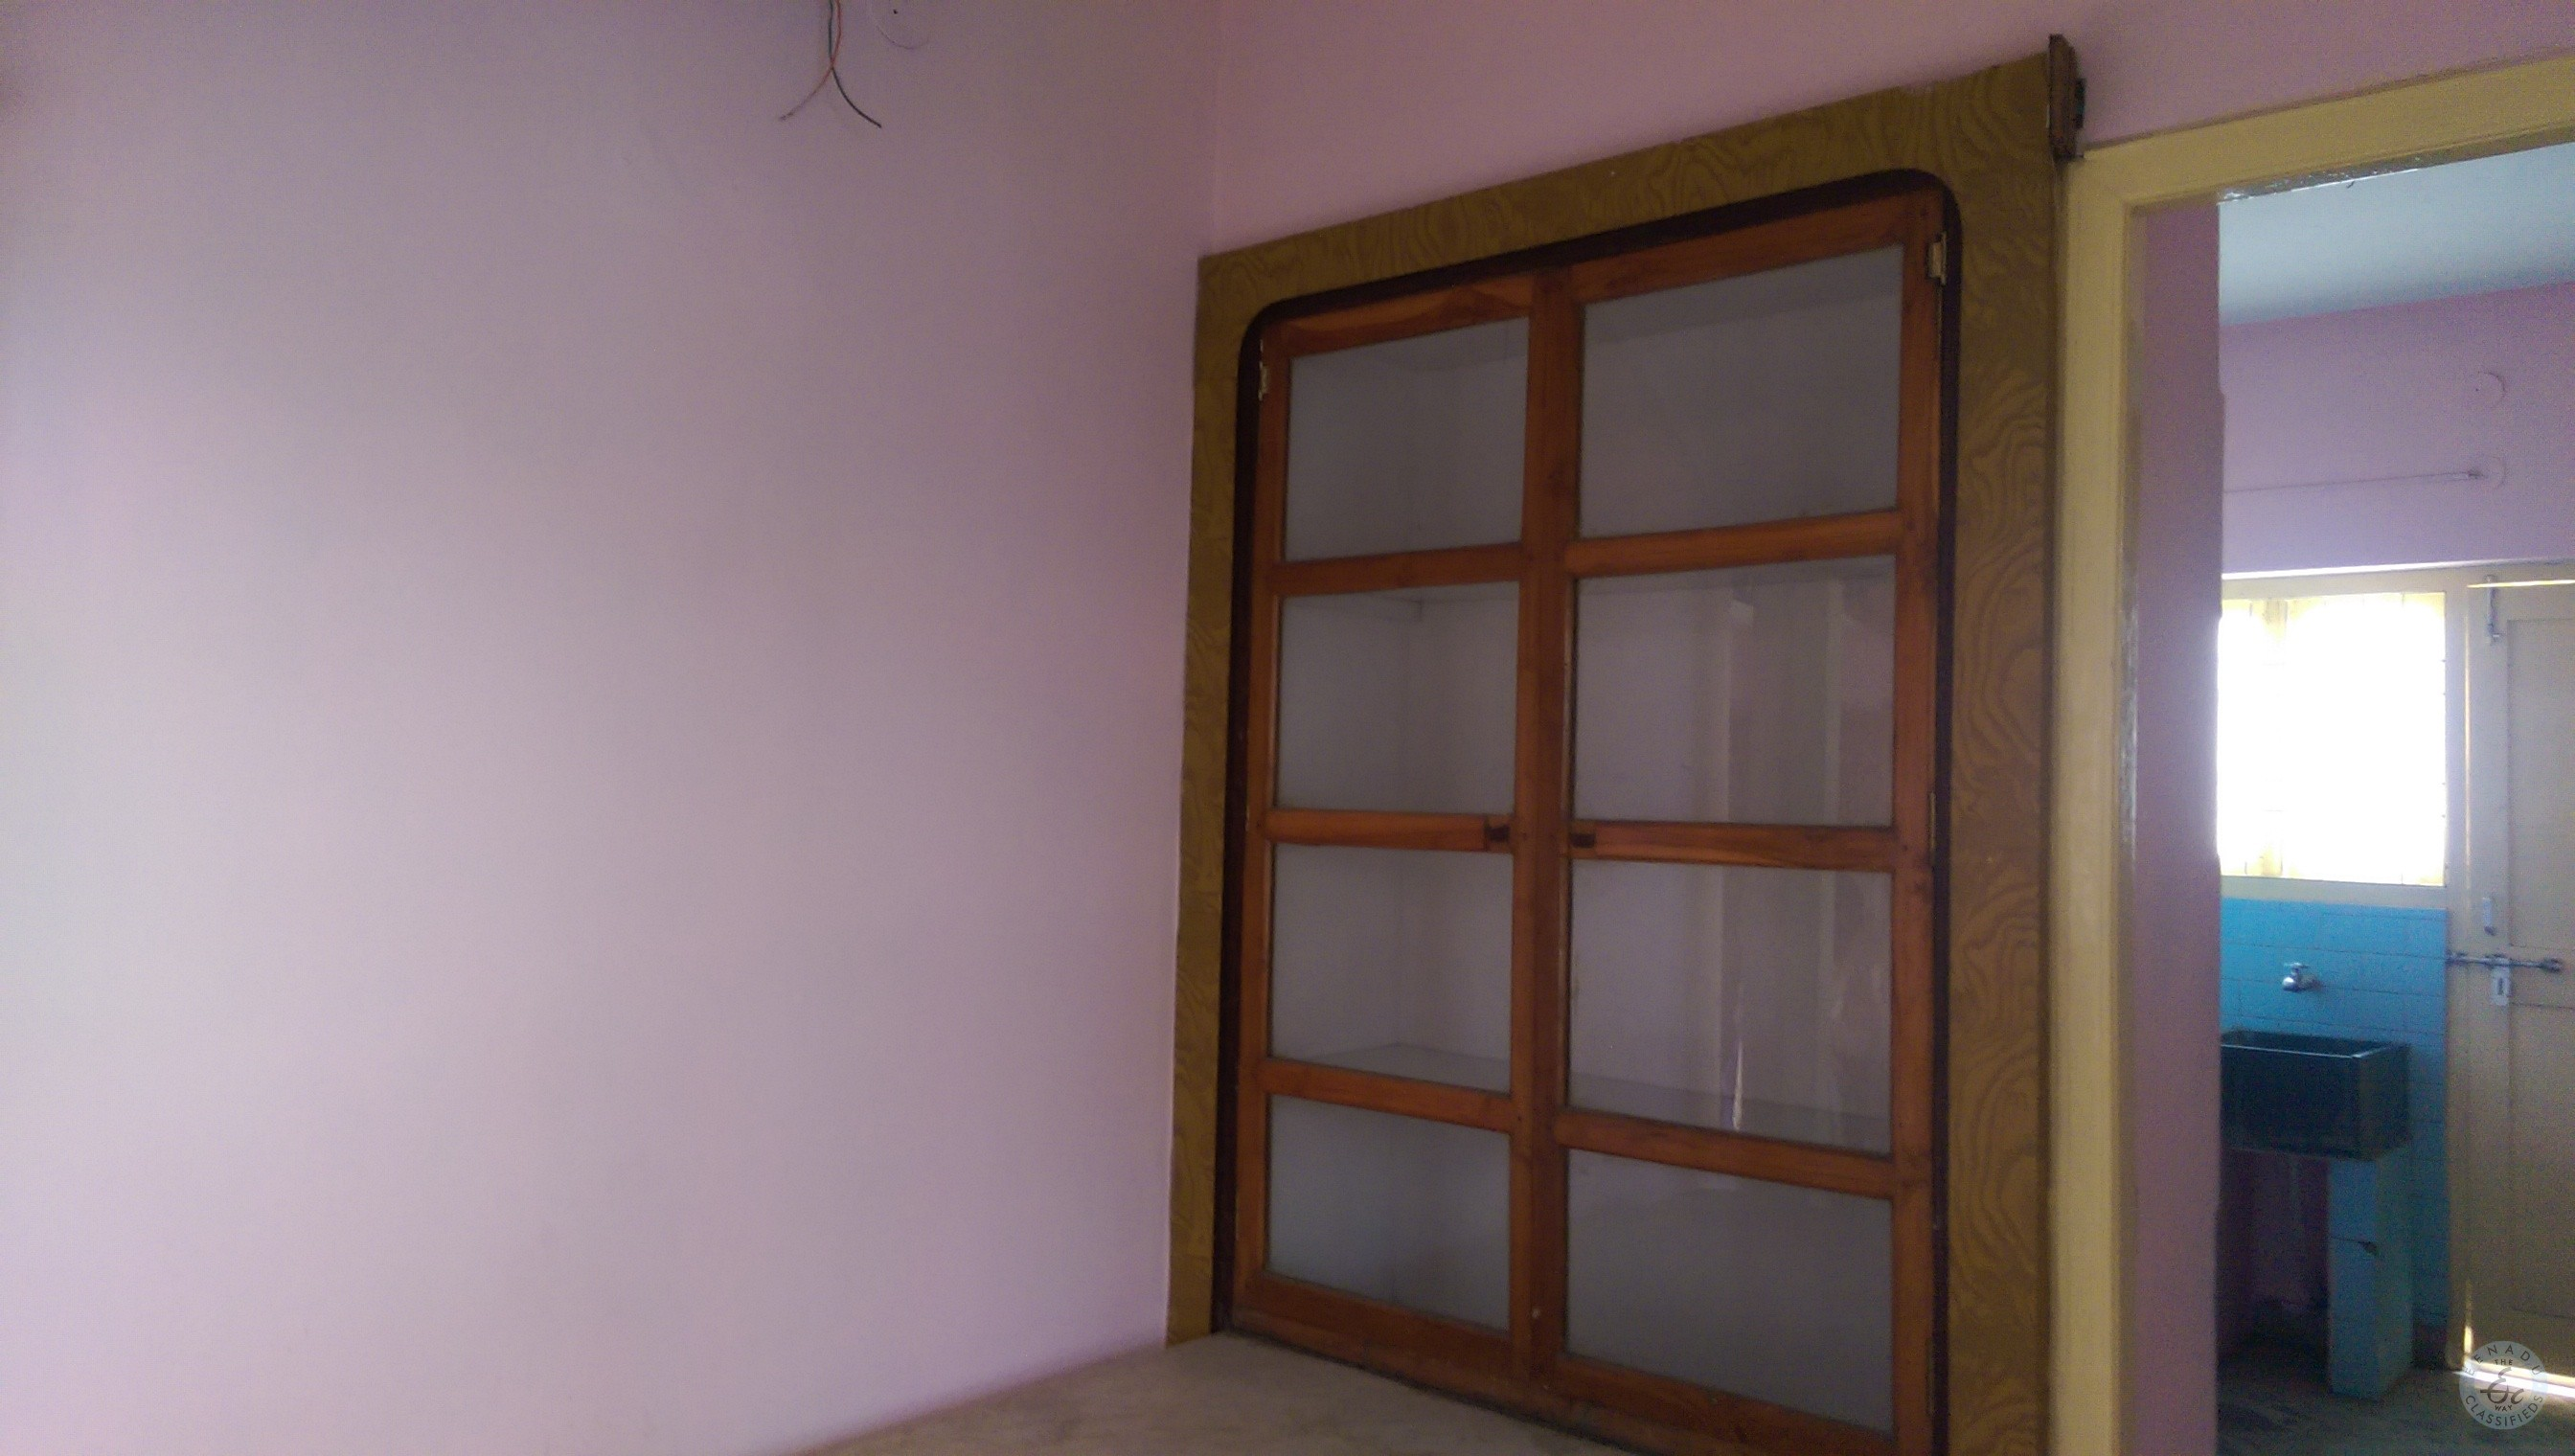 3BHK Flat For Residence/office/hostel, 1 Office/godown Space For Rent